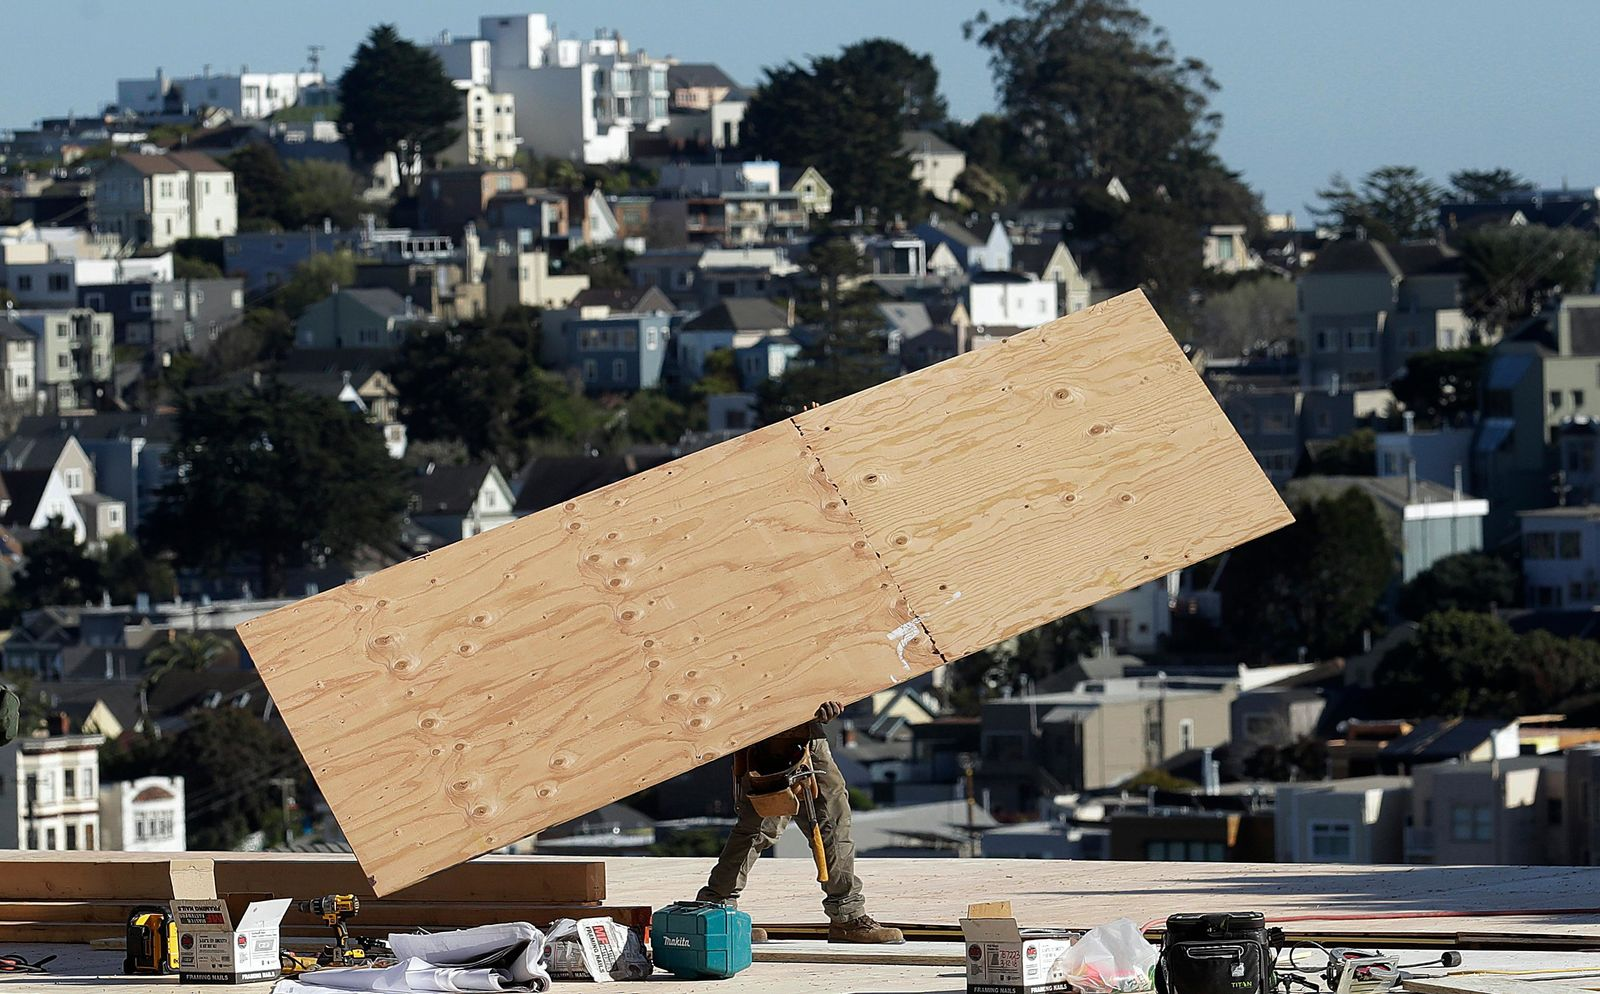 FILE - In this March 28, 2018, file photo, a construction crew works on a roof in San Francisco. California officials announced Friday, Aug. 16, 2019, that job growth in the world's fifth-largest economy is now in its 113th month, tying the expansion of the 1960s as the longest on record. . (AP Photo/Jeff Chiu, File)